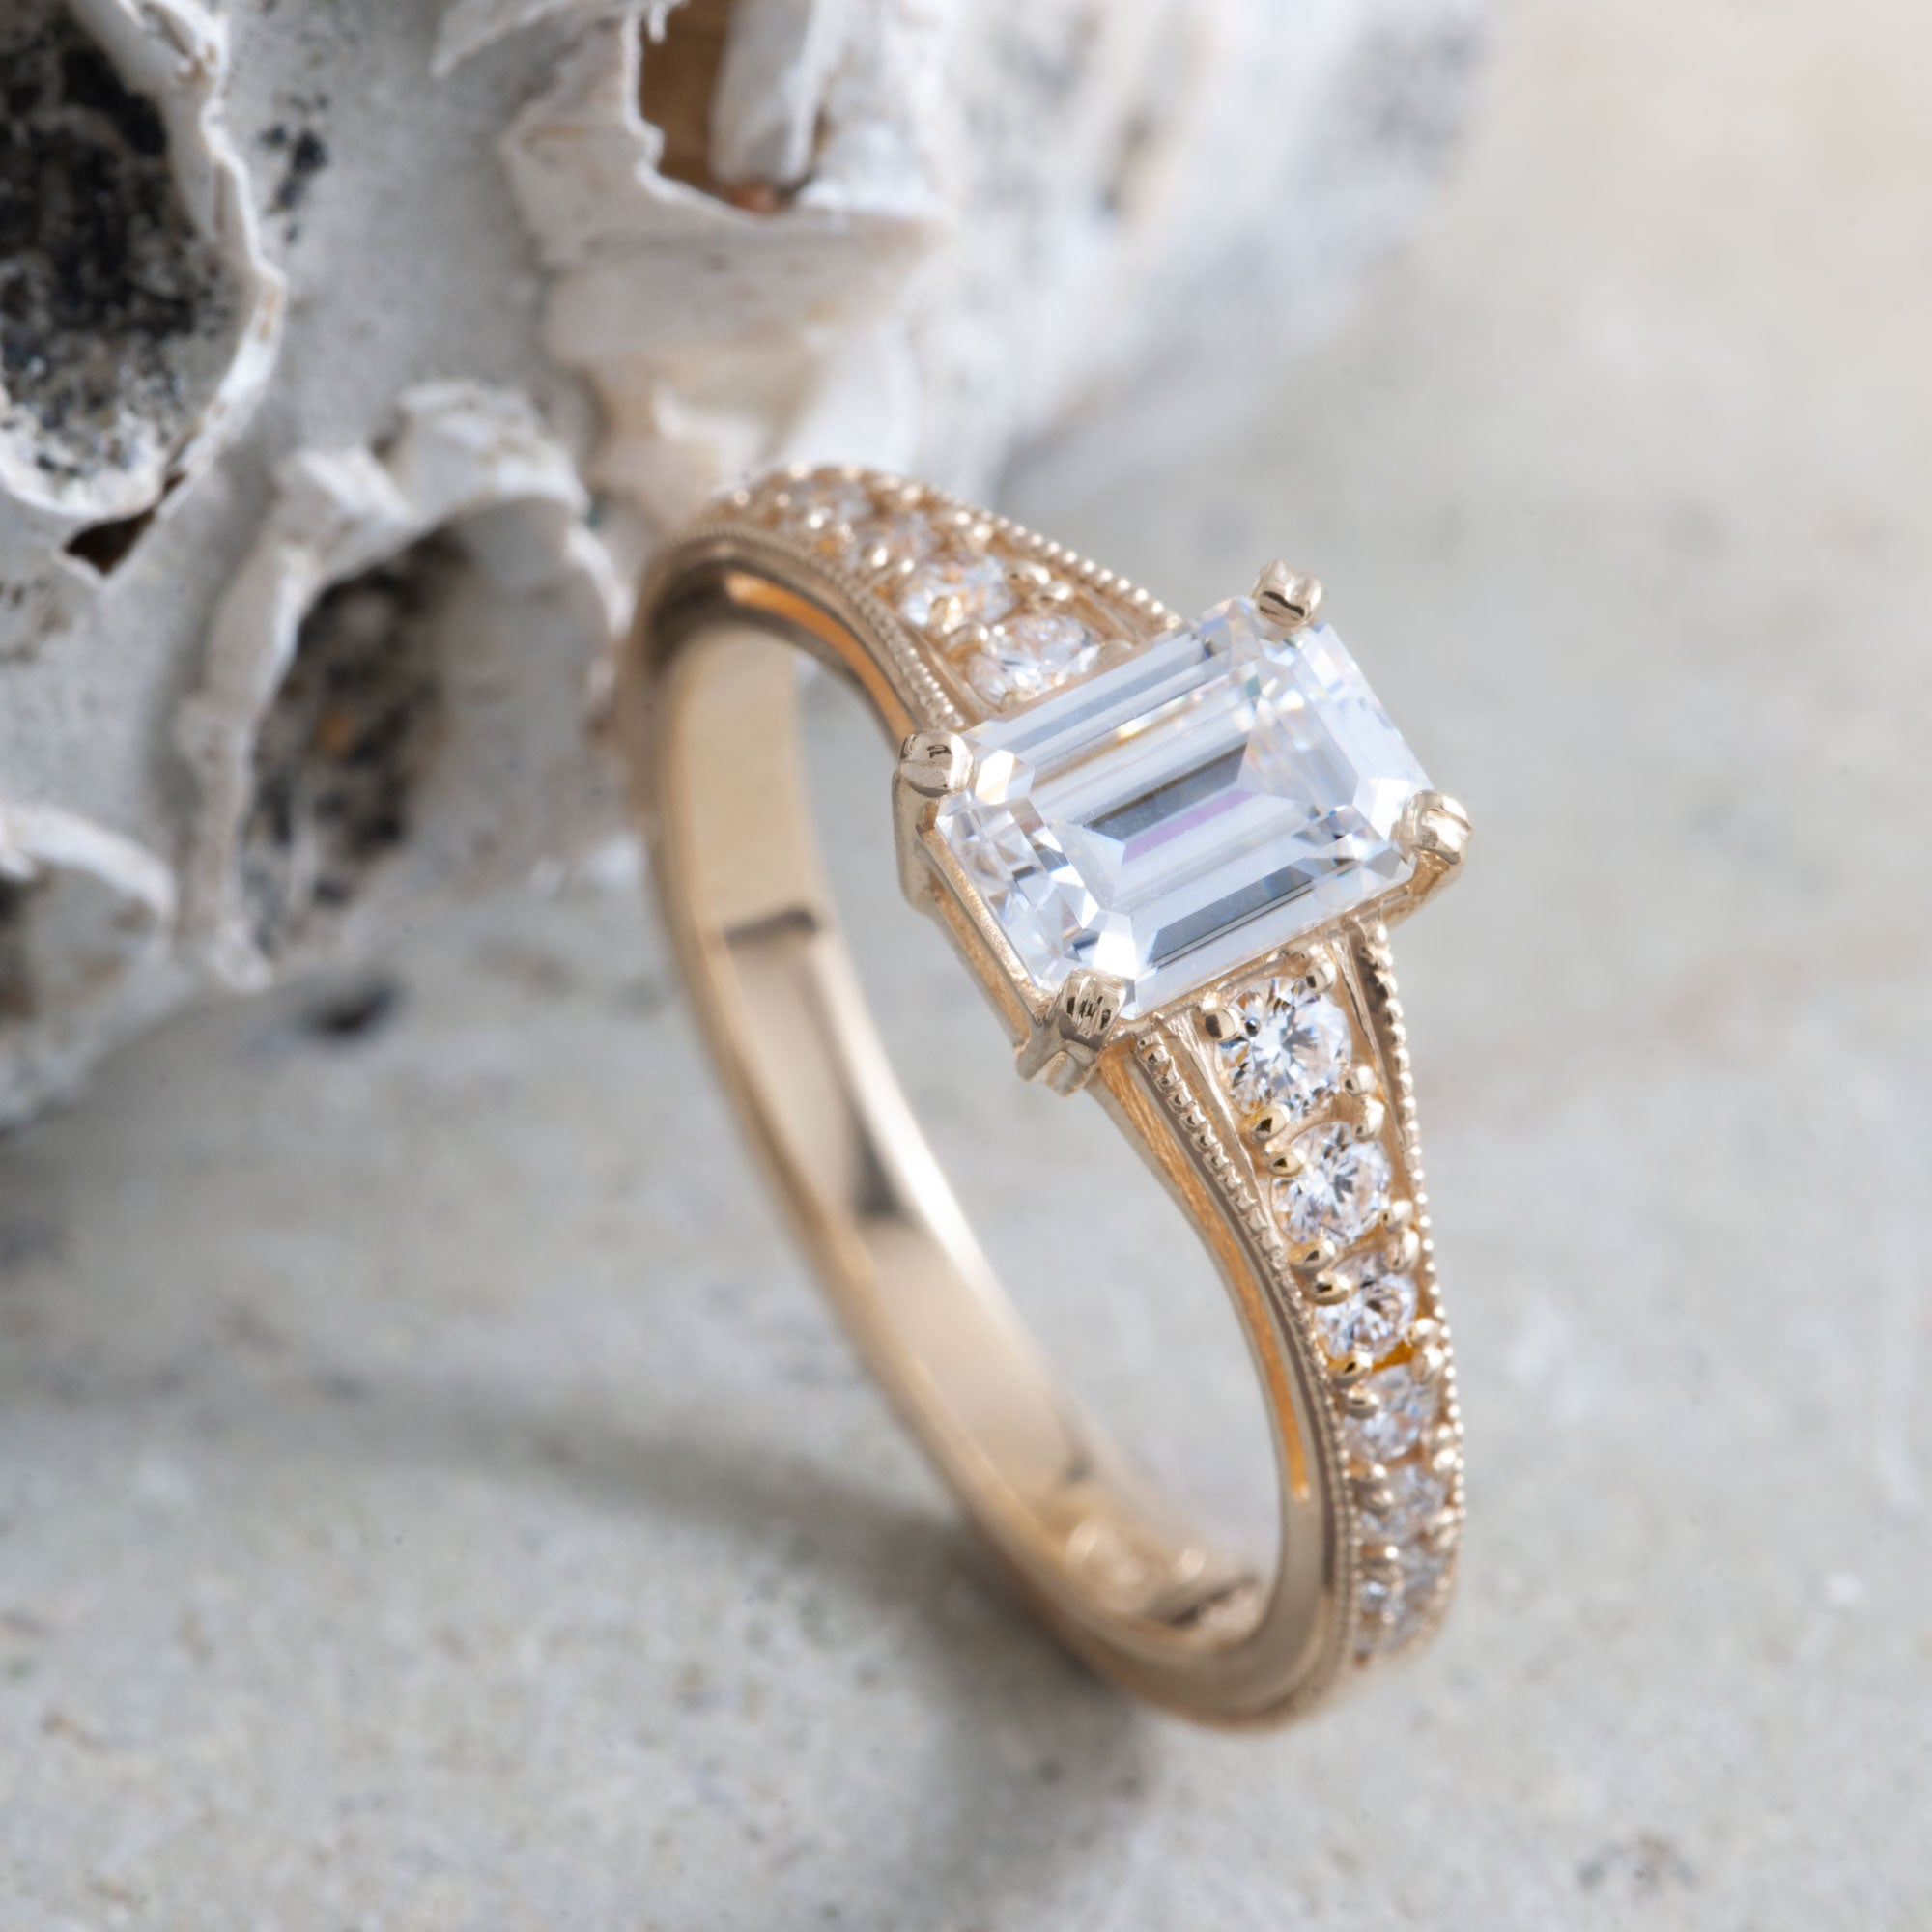 Yellow Gold Moissanite Engagement Ring | Era Design Vancouver Canada